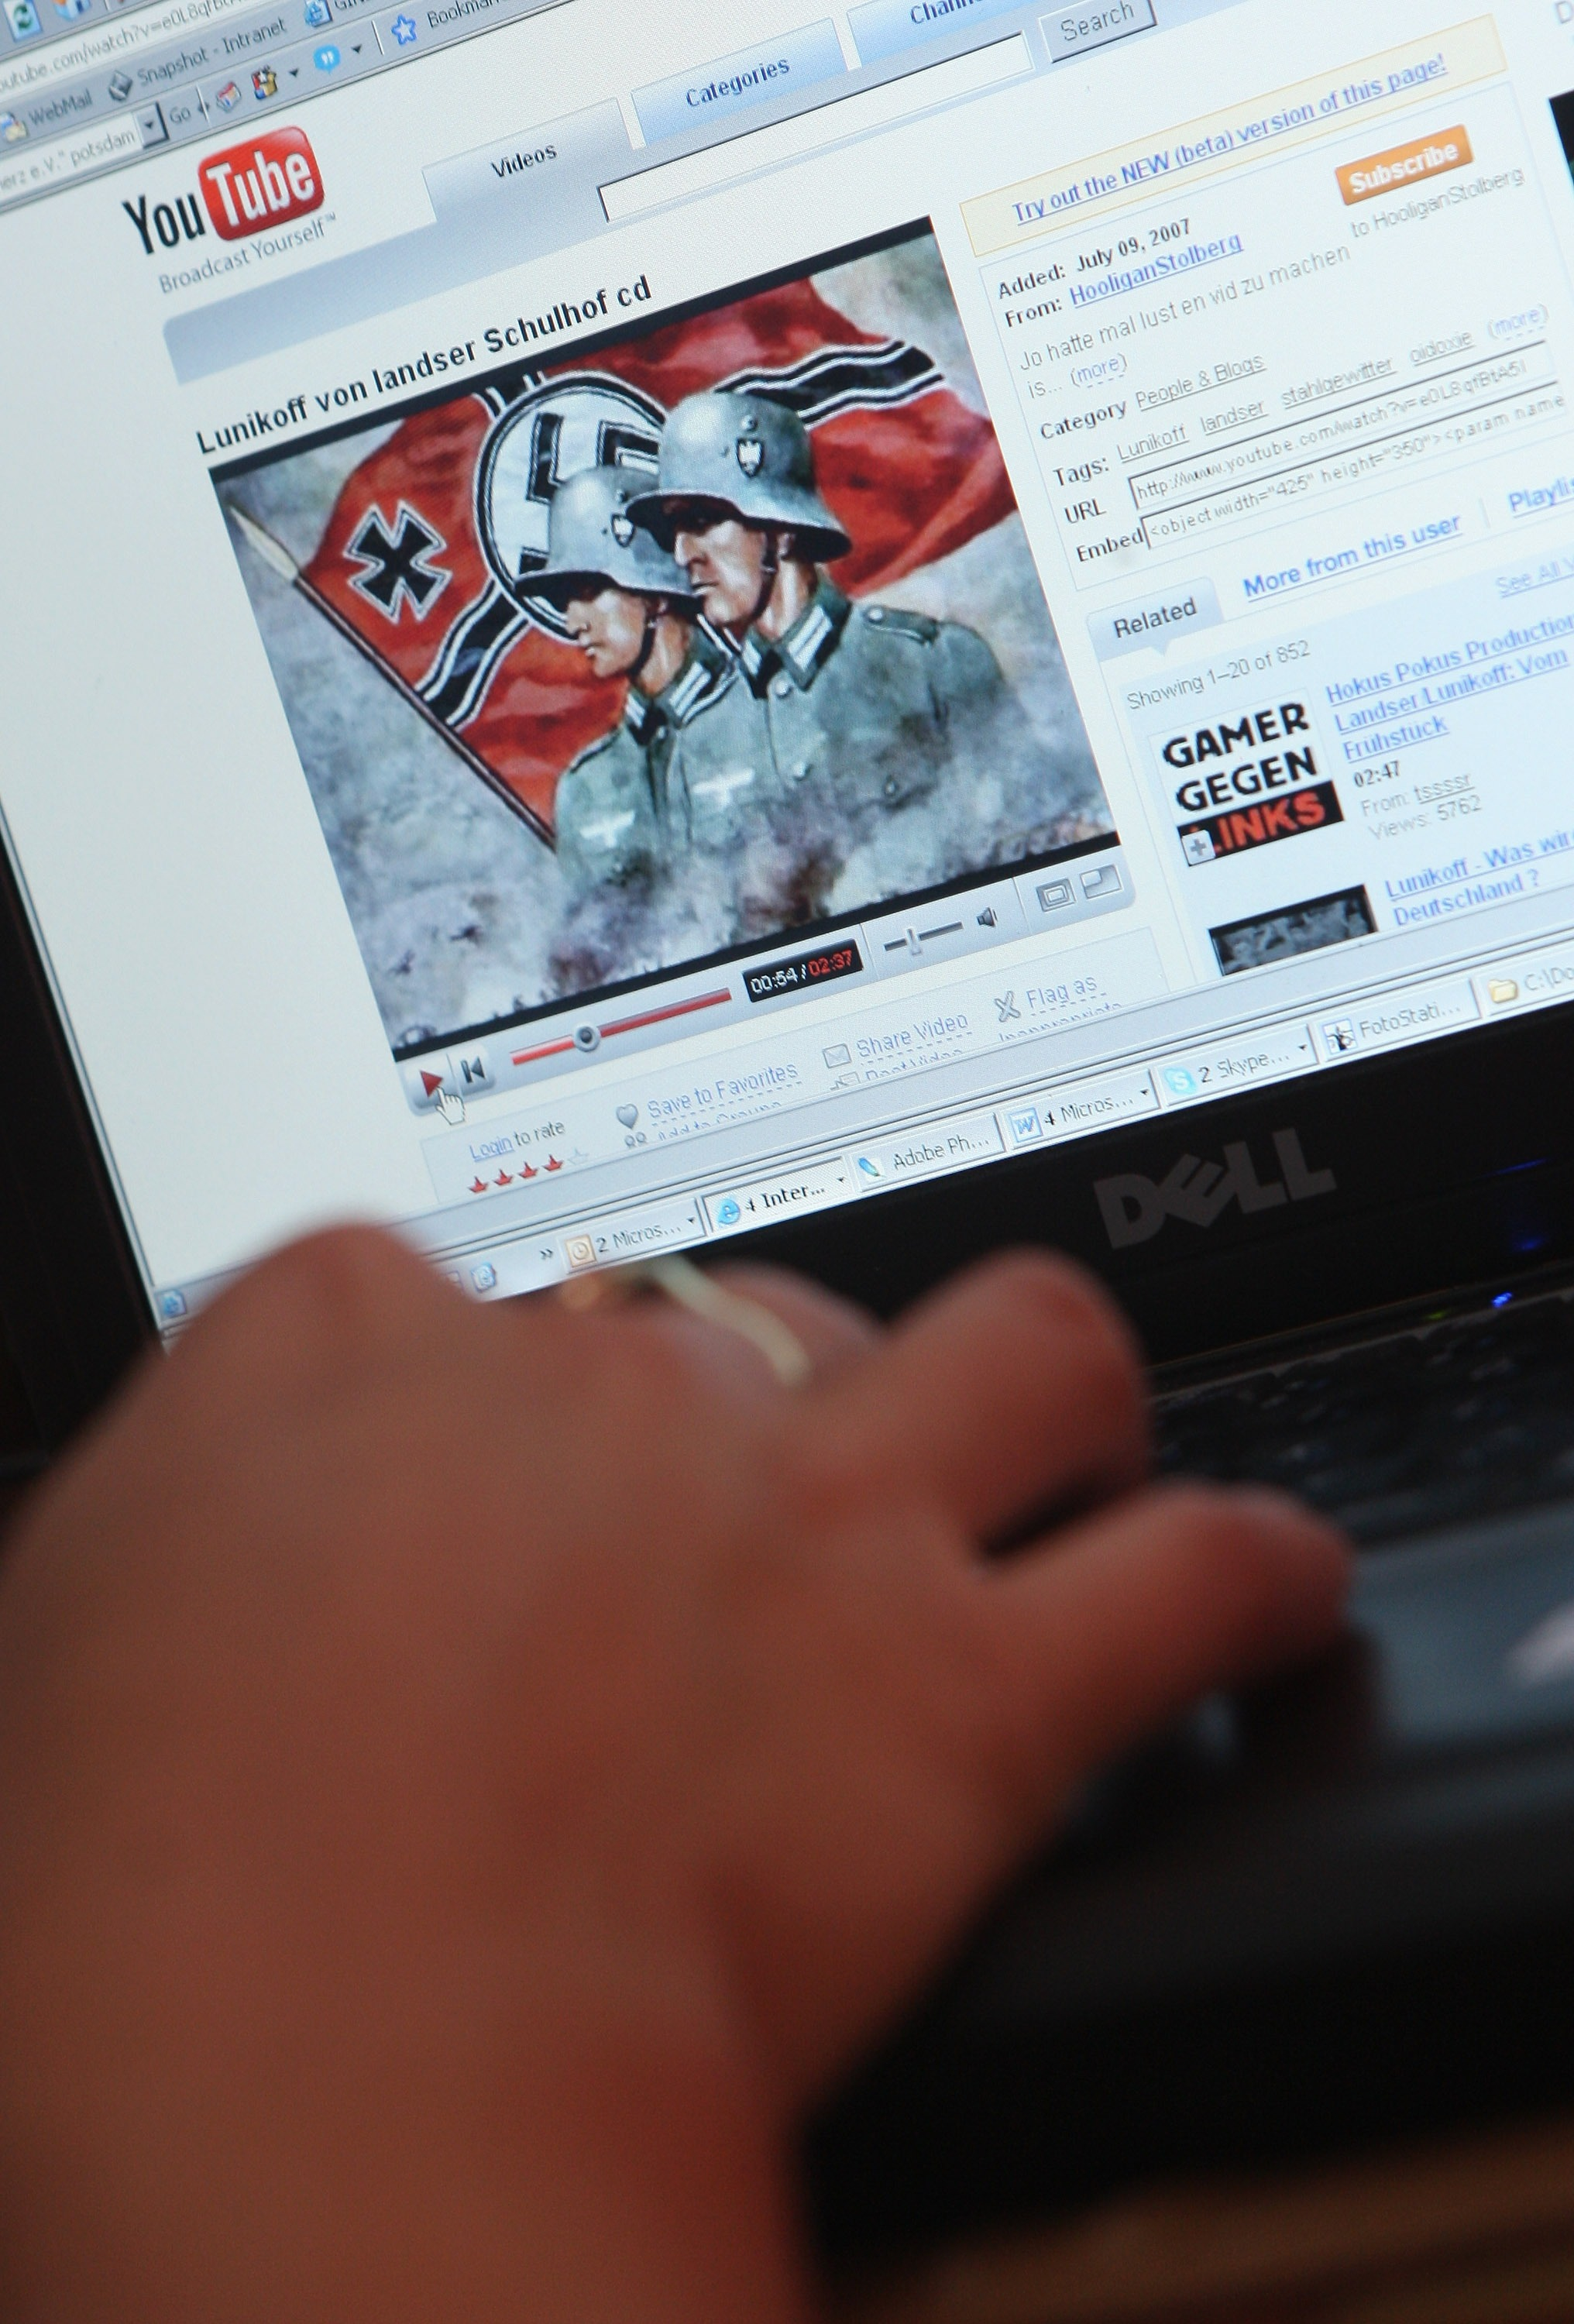 Neo-Nazis Using YouTube for Propaganda